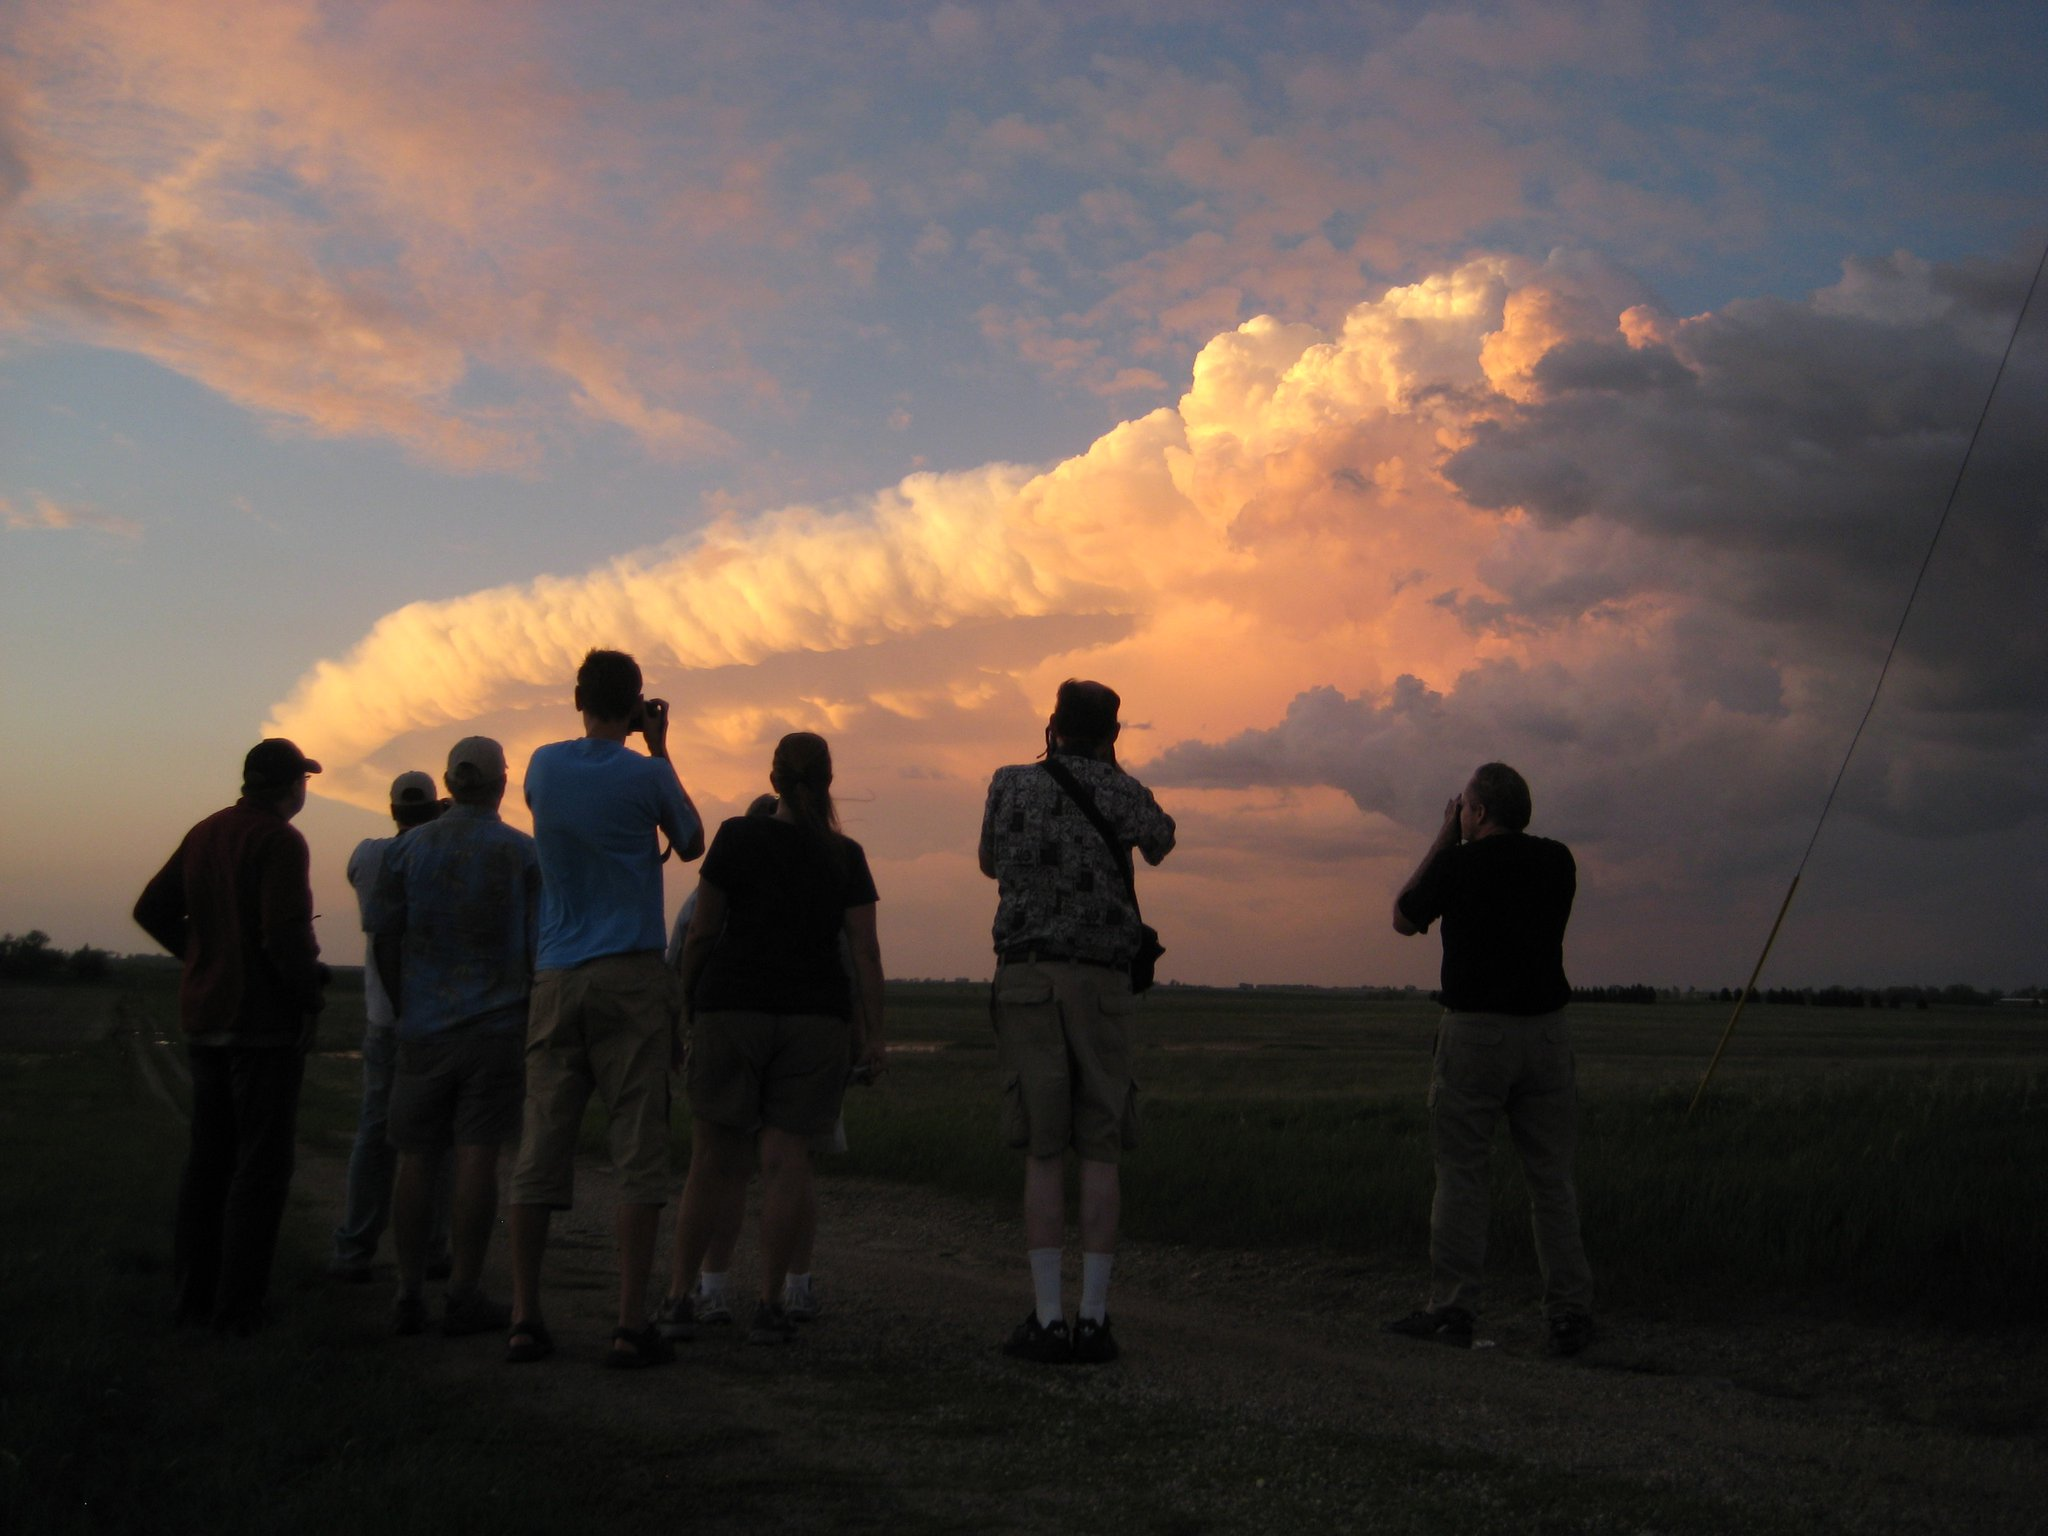 Storm chasing tour guests observe a supercell near Minot, ND